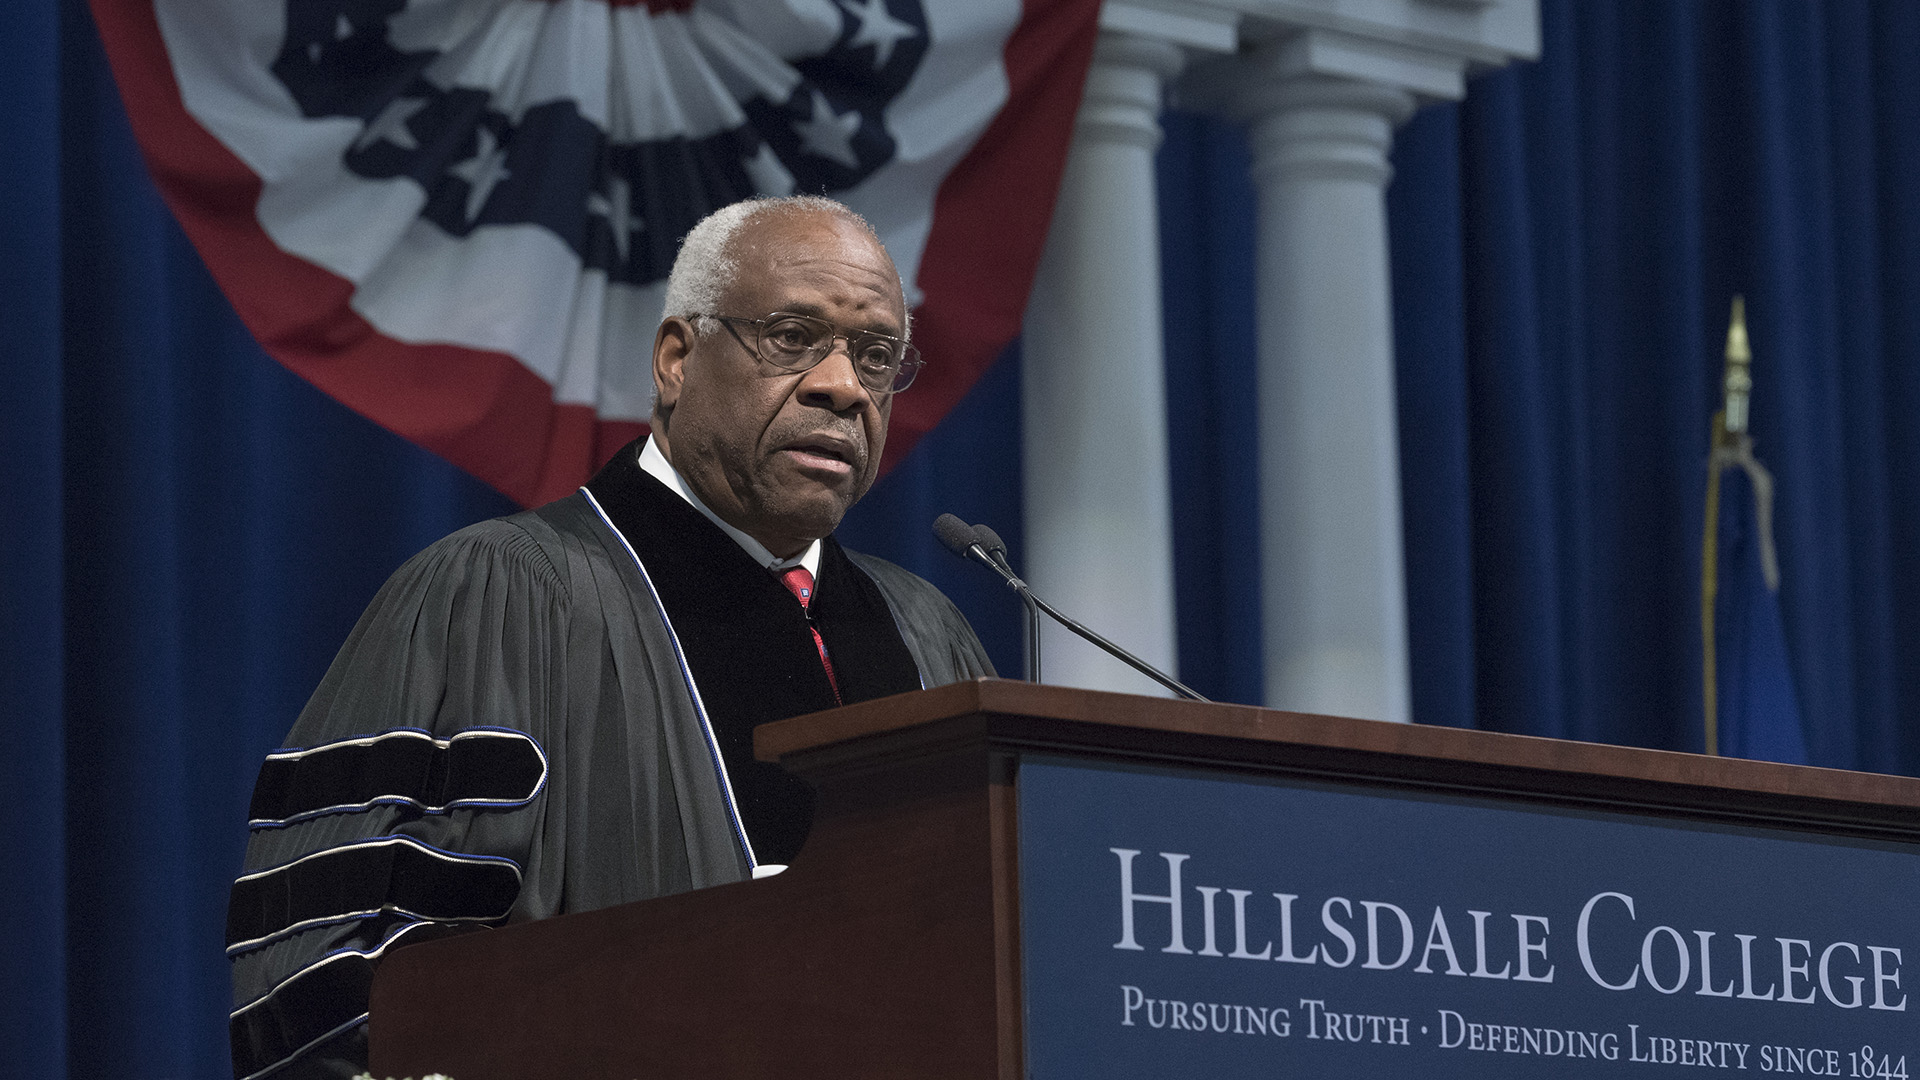 https://imprimis.hillsdale.edu/wp-content/uploads/2016/06/Justice-Thomas-at-Commencement.jpg